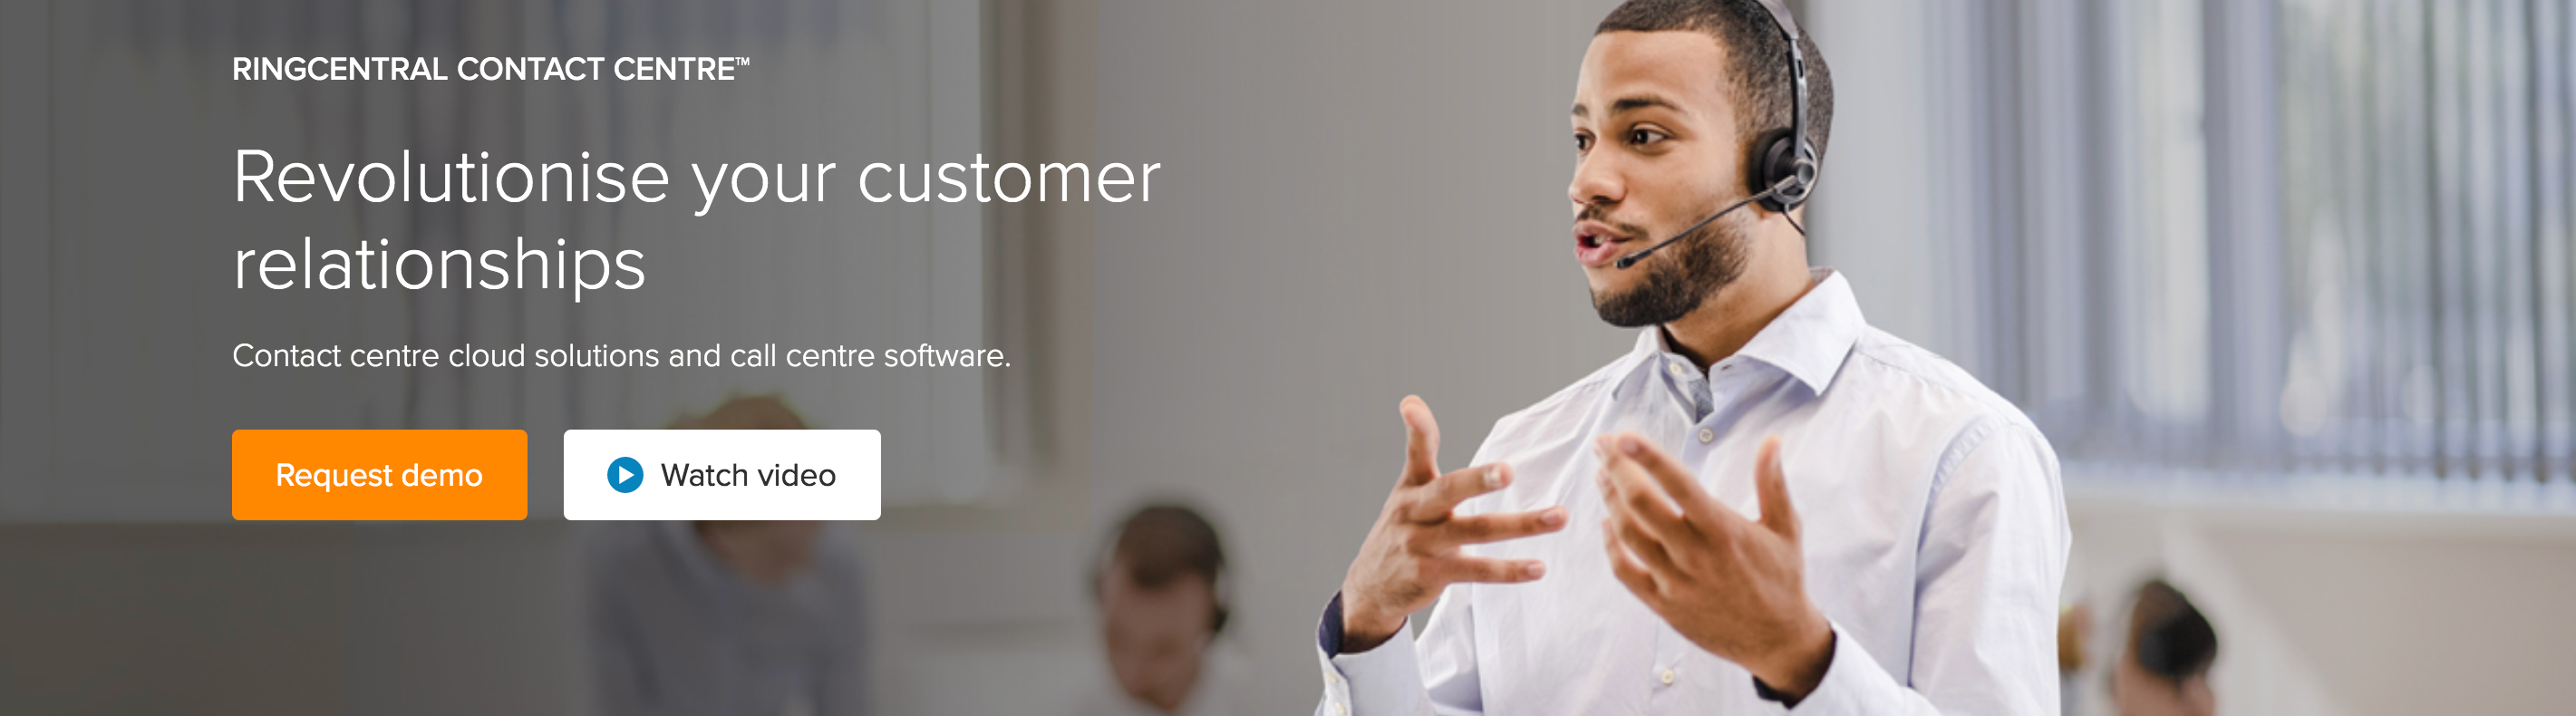 Transform customer engagement with Collaborative Contact Centre technology